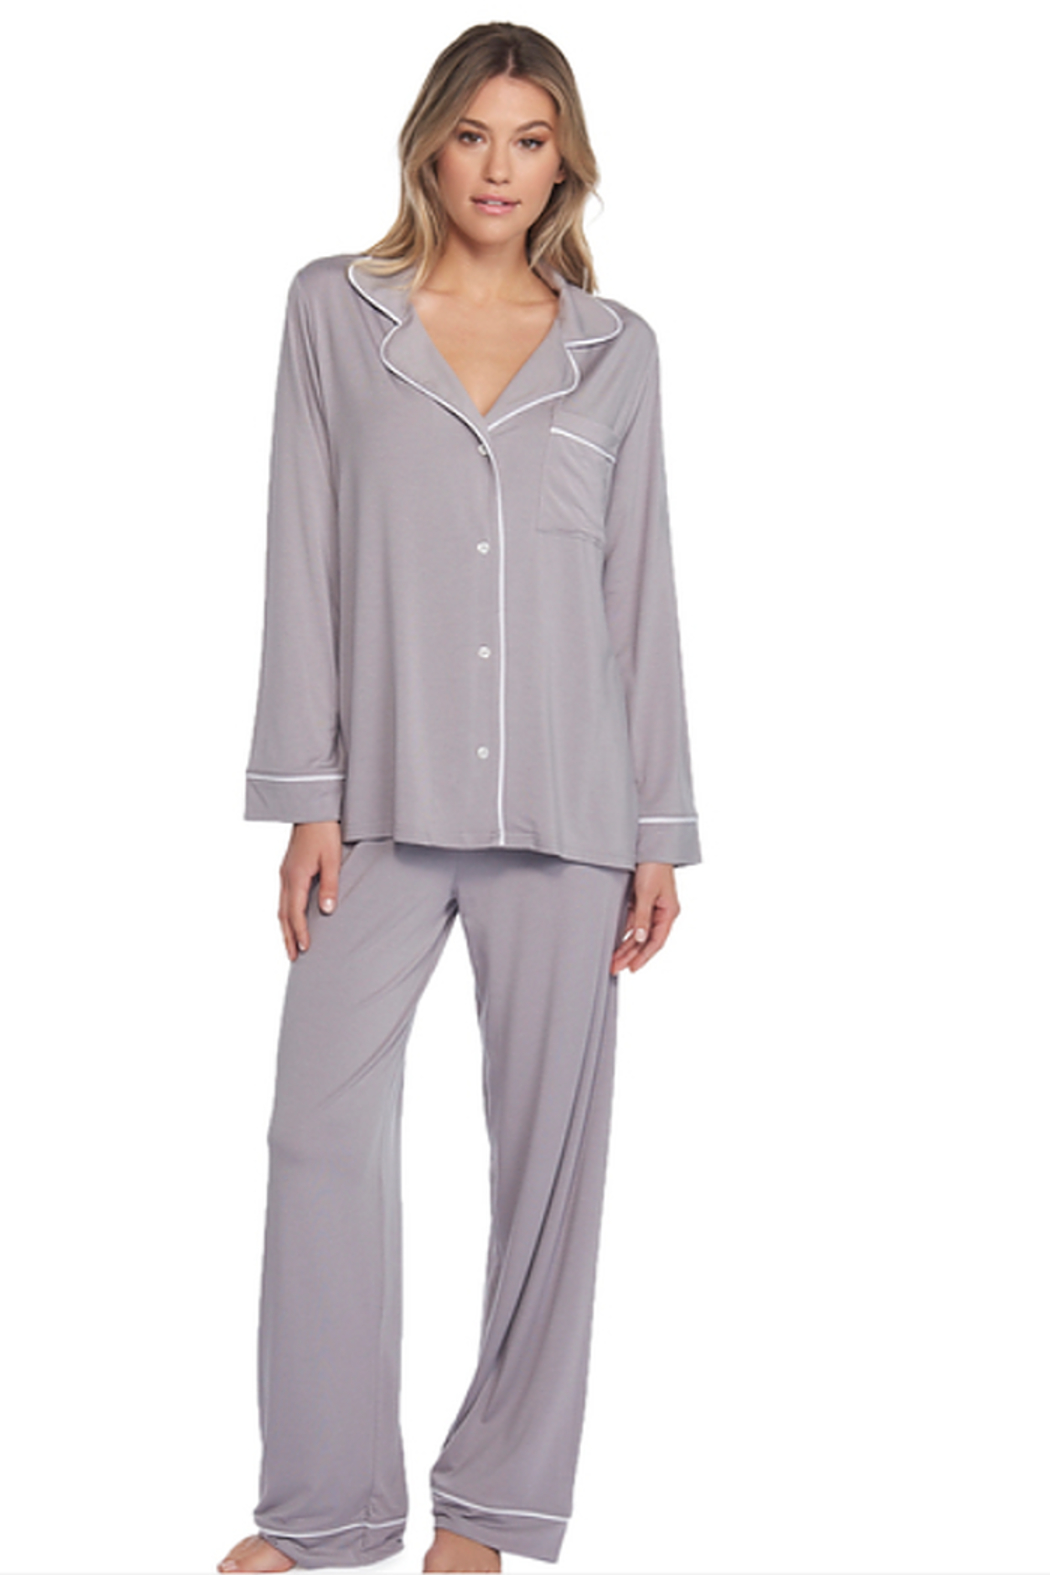 The Birds Nest LUXE MILK JERSEY PIPED PAJAMA SET - PEWTER (SMALL) - Main Image